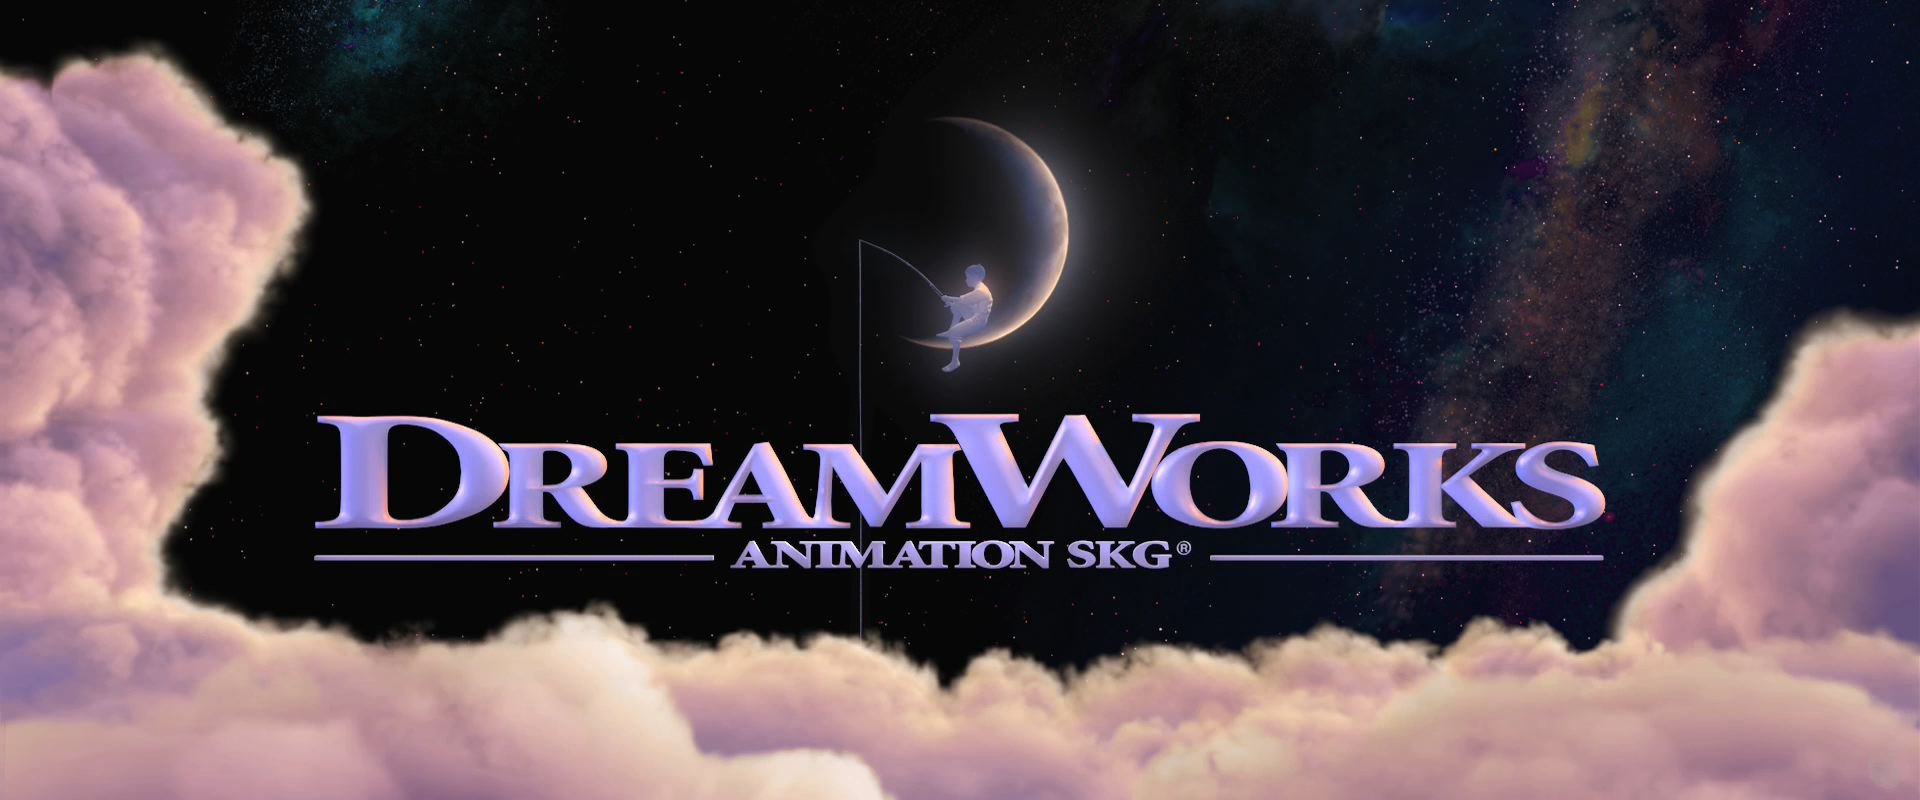 http://simplywallpaper.net/pictures/2010/11/28/Dreamworks-Studio-Space-Clouds-Logo-Wallpaper.jpg